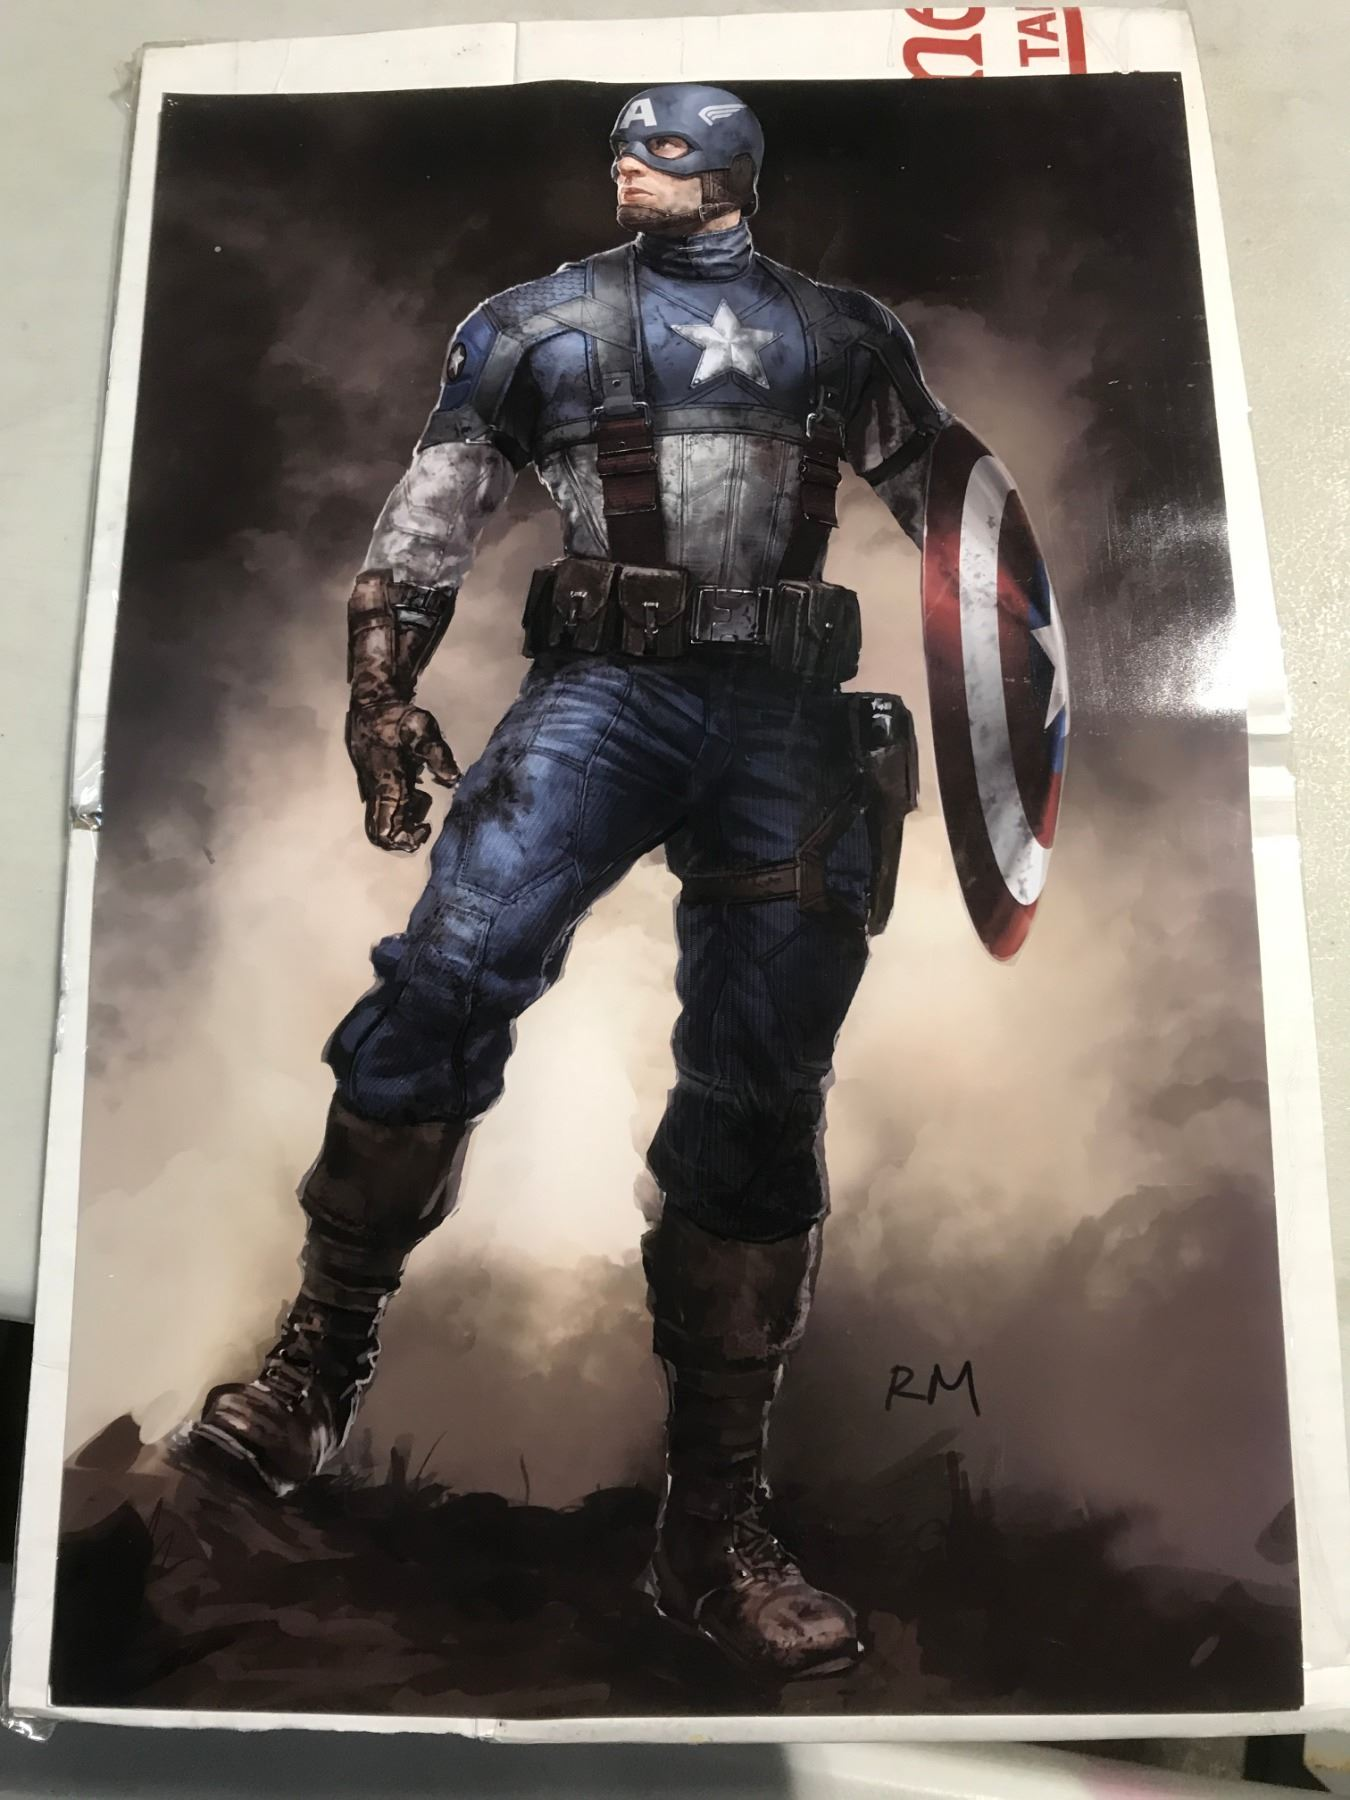 Captain America The First Avenger 2011 Production Used Concept Art Photos